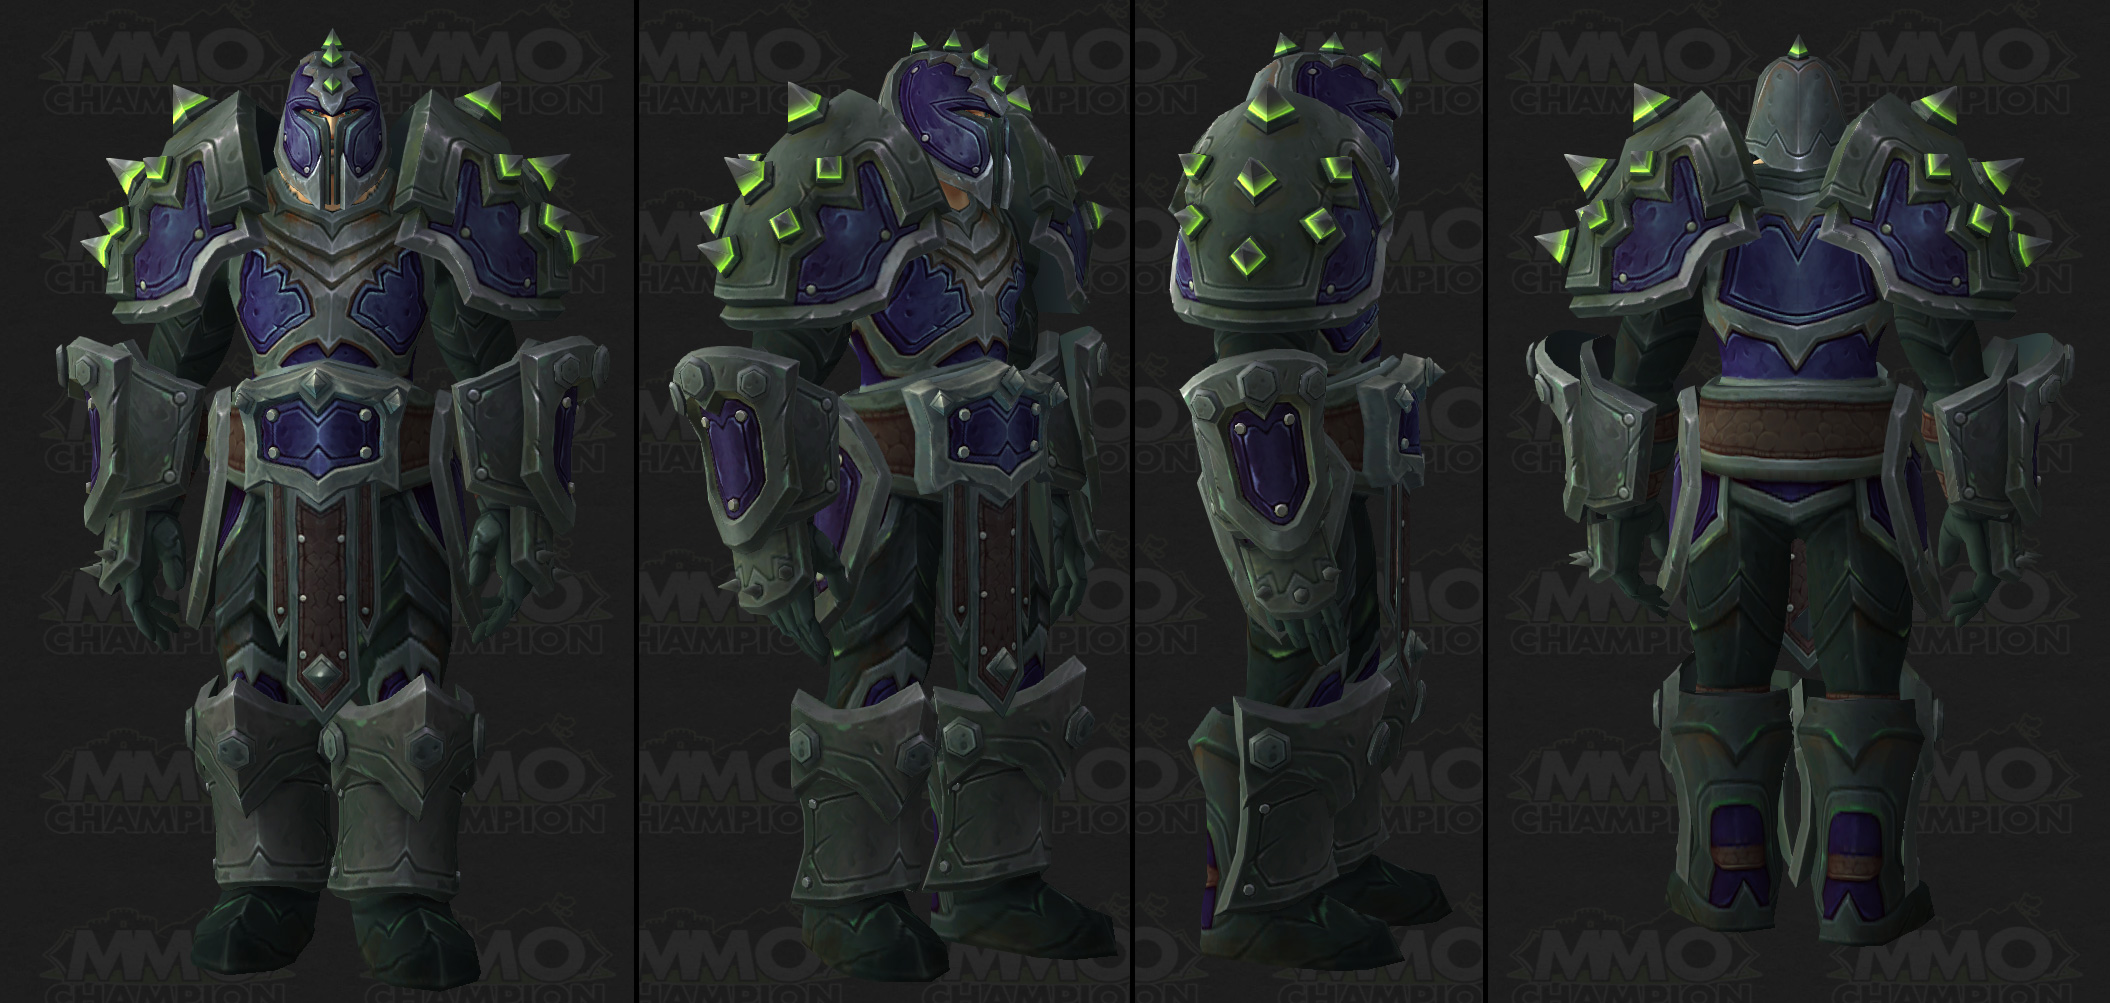 How To Craft Argus Gear